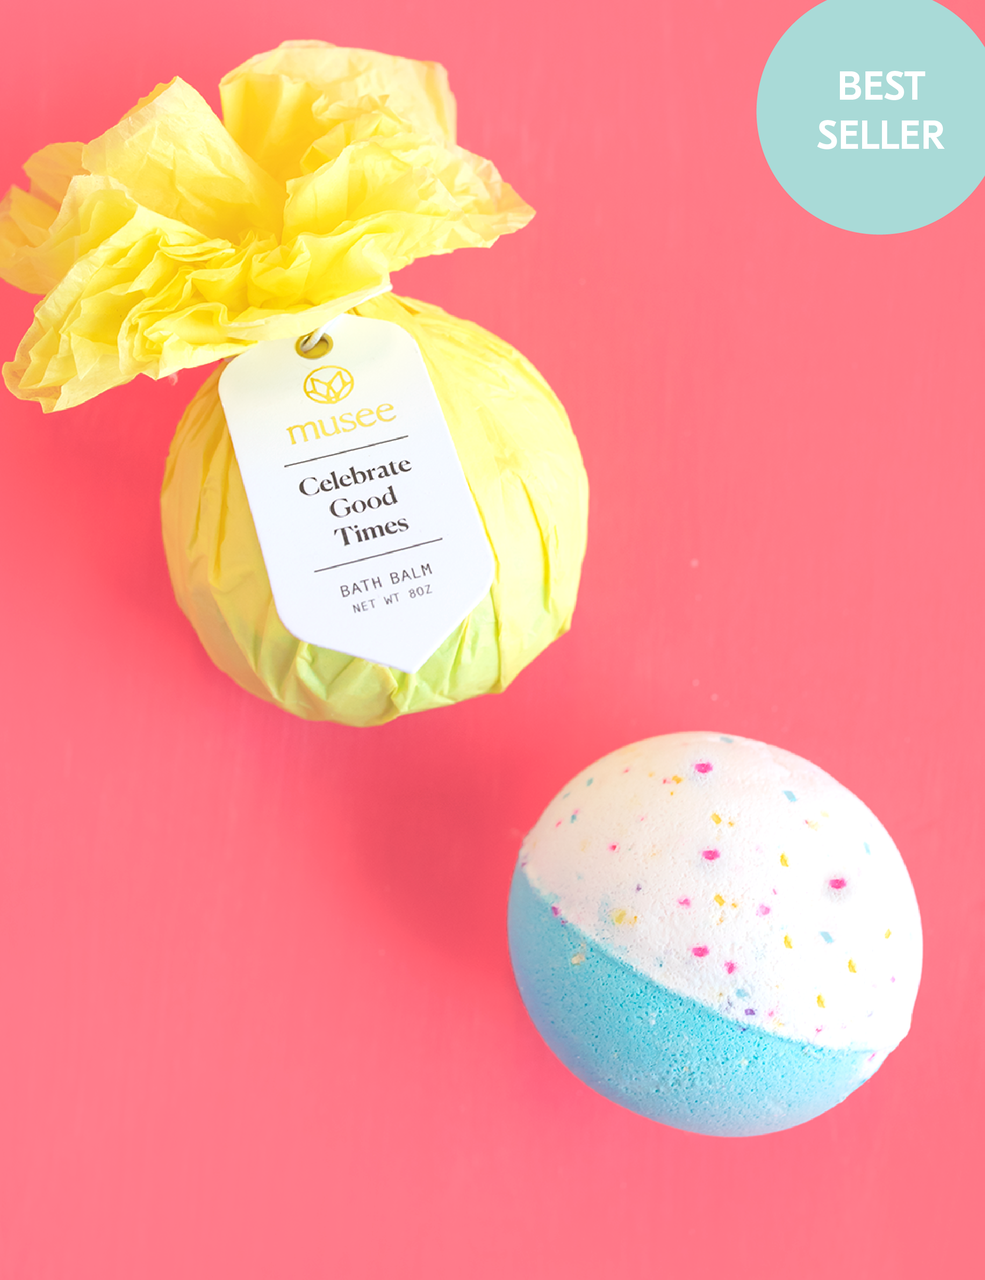 Musee Bath Bomb - Celebrate Good Times - Monogram Gifts